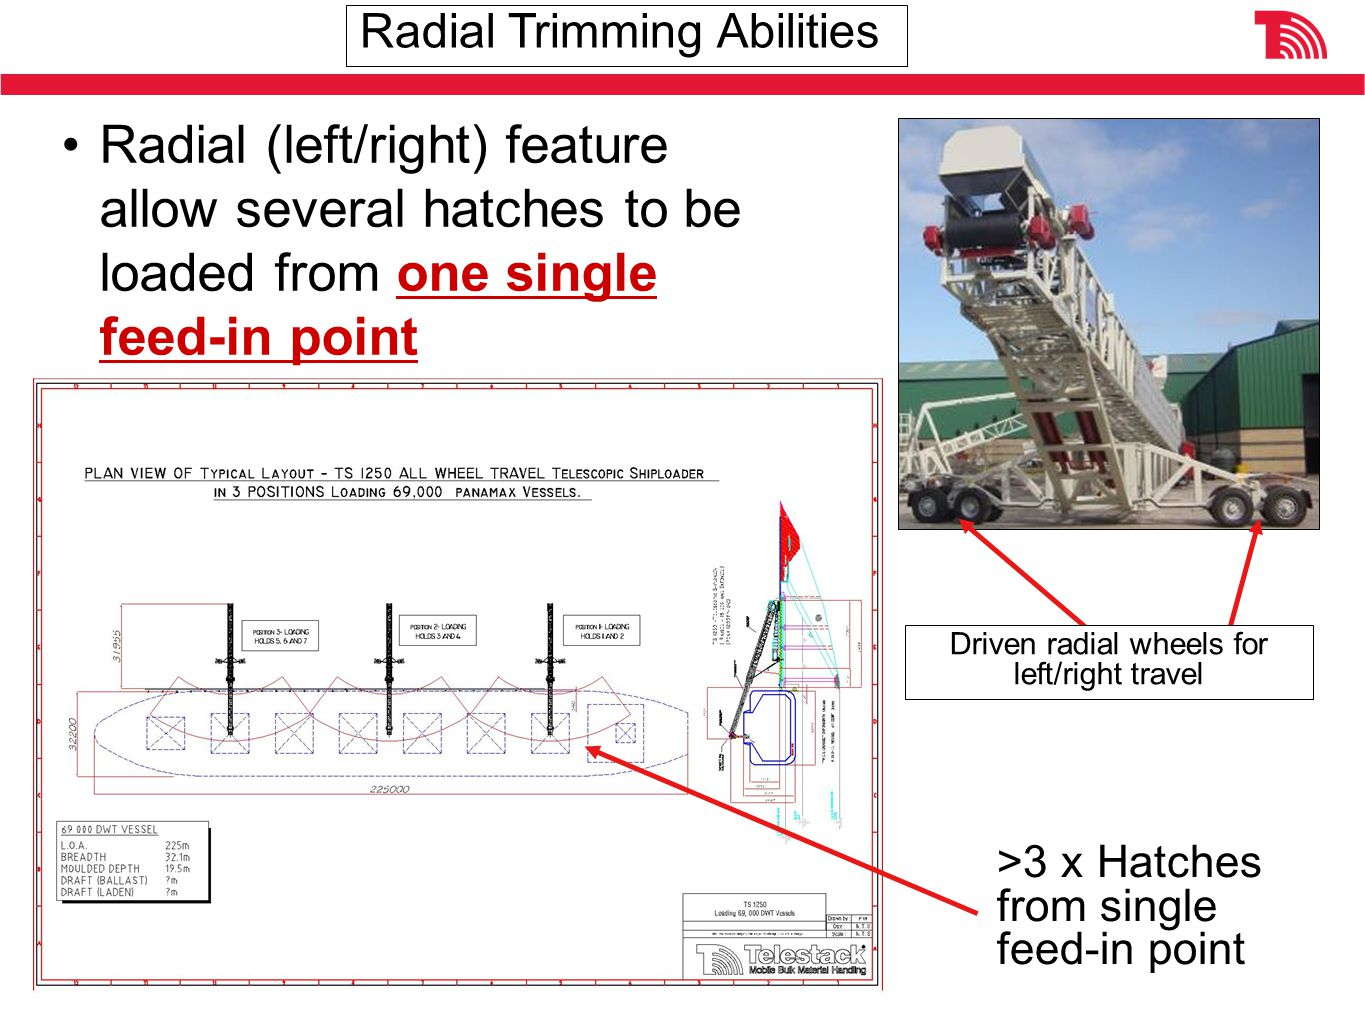 Radial (left/right) feature allow several hatches to be loaded from one single feed-in point Driven radial wheels for left/right travel >3 x Hatches from single feed-in point Radial Trimming Abilities